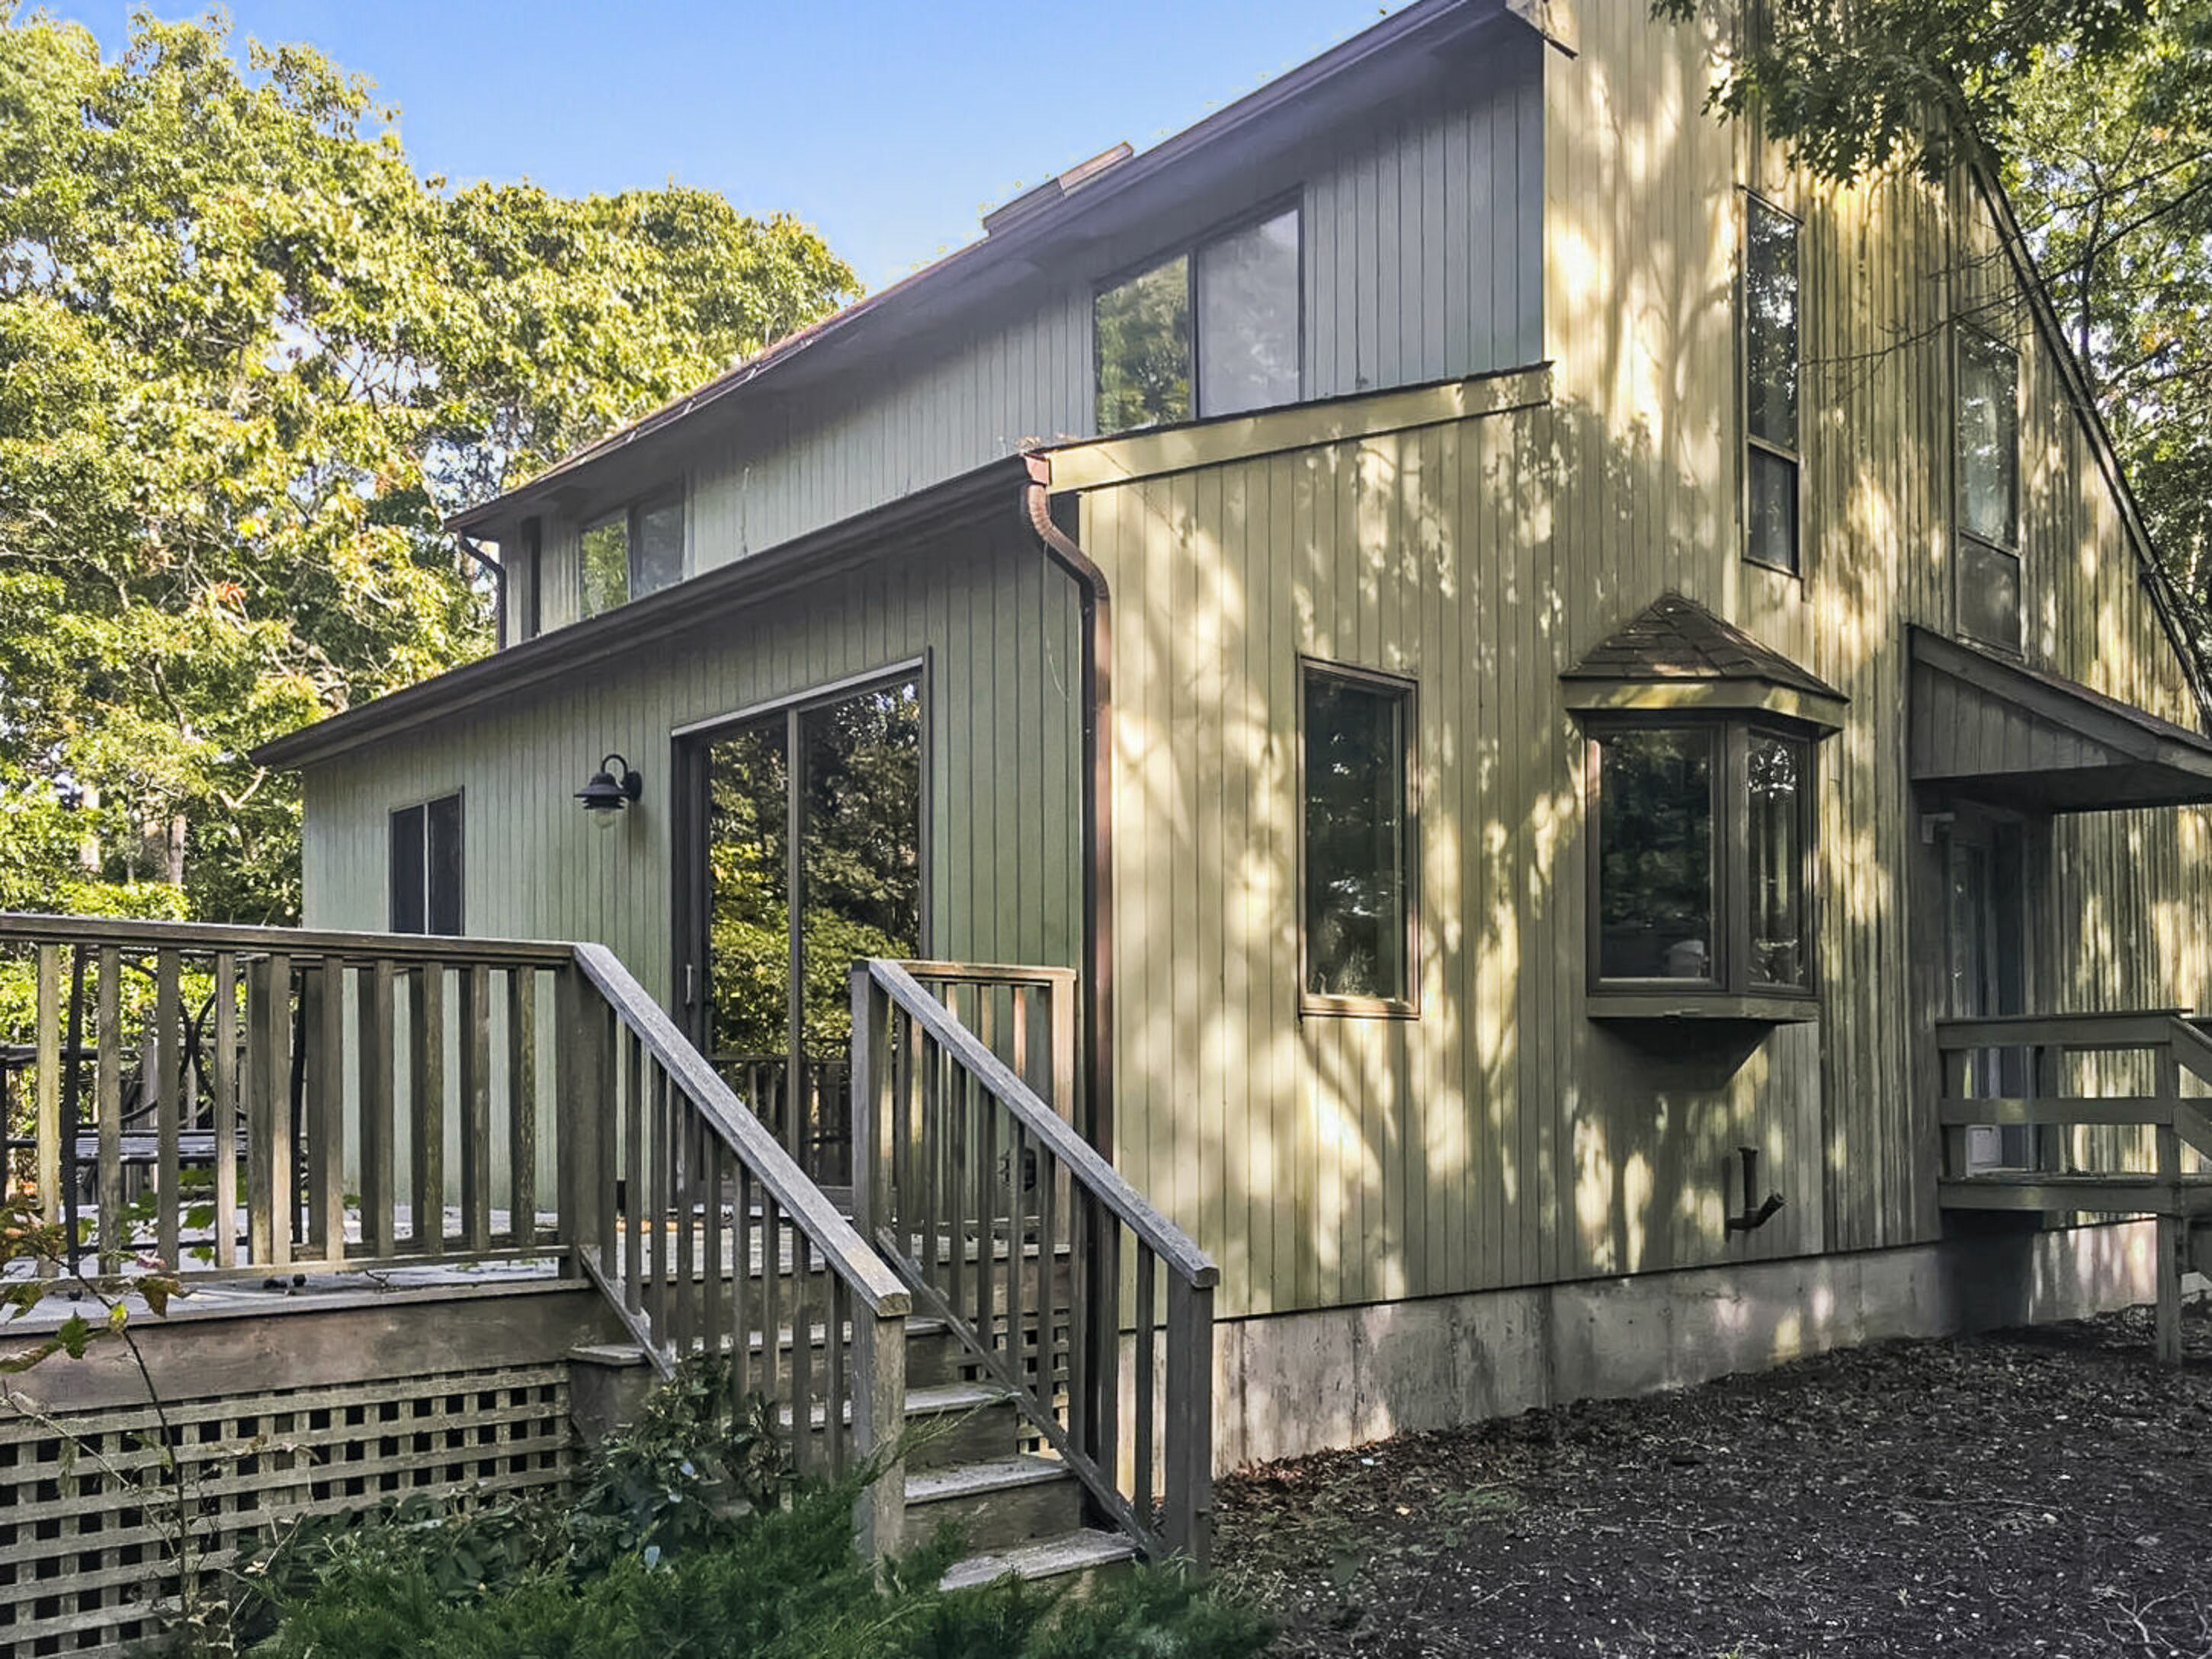 East Hampton~ Village Fringe-Ready to make it your own